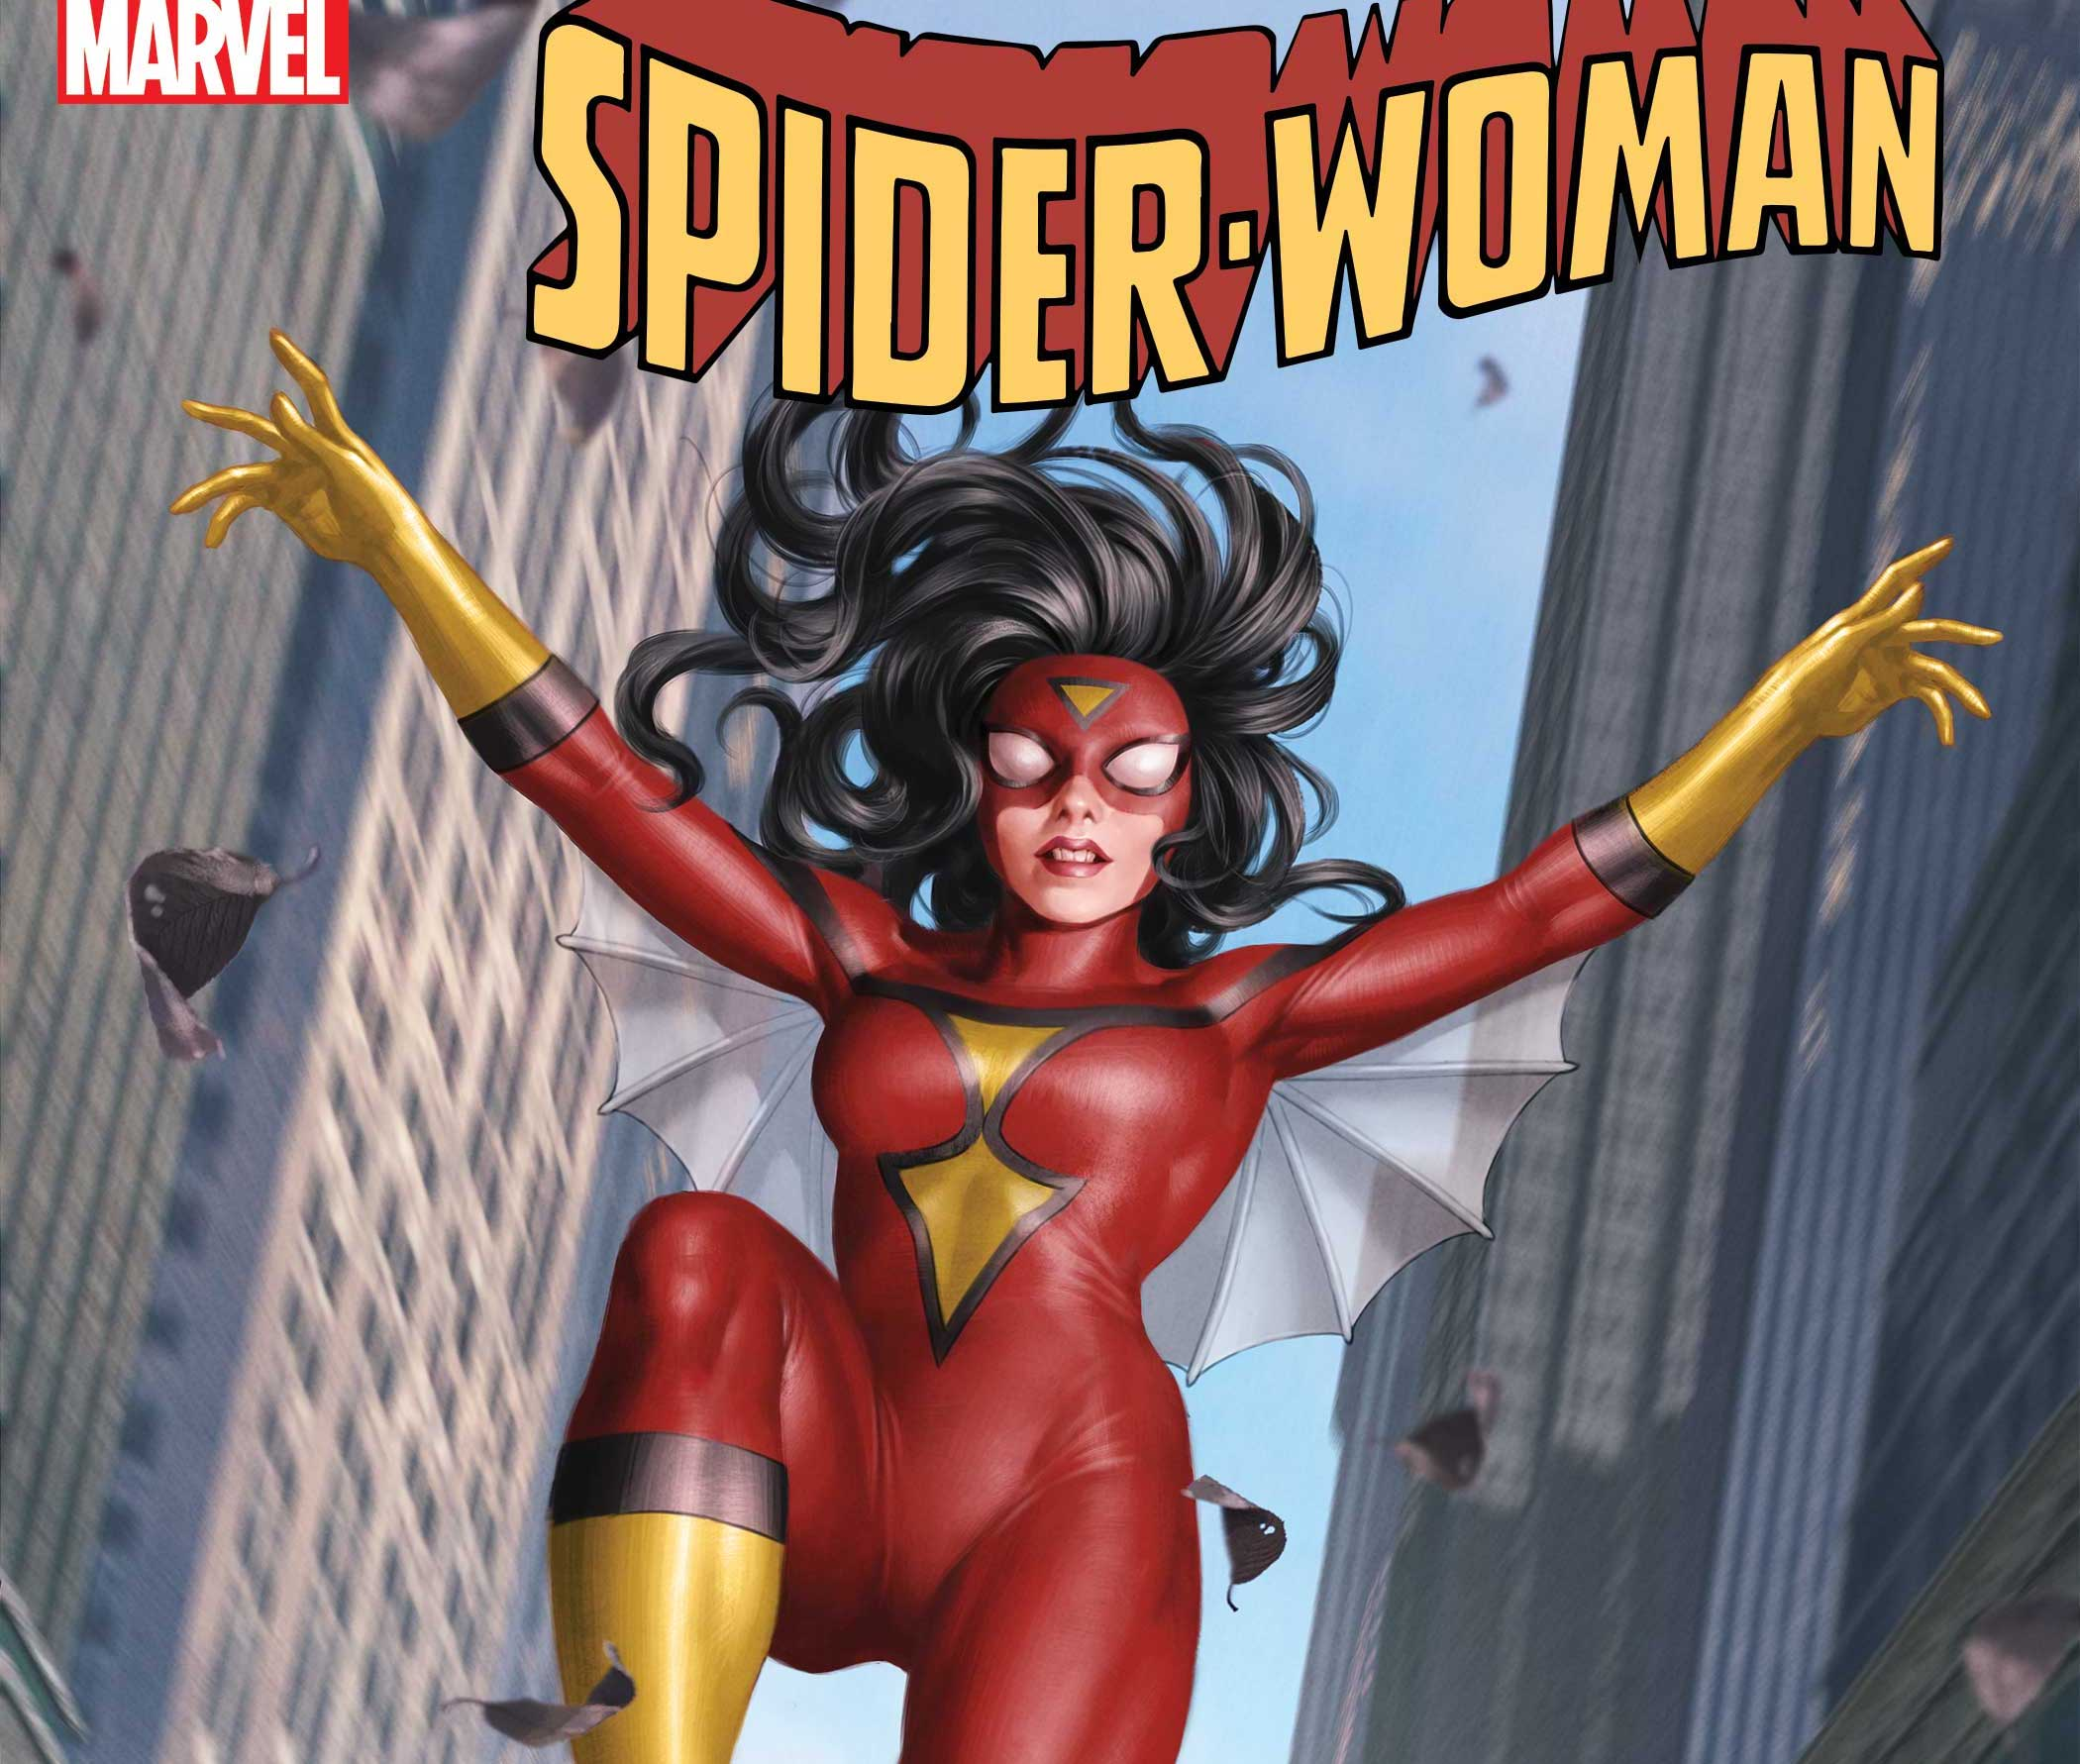 Spider-Woman zips back up the classic costume in 'Spider-Woman' #11